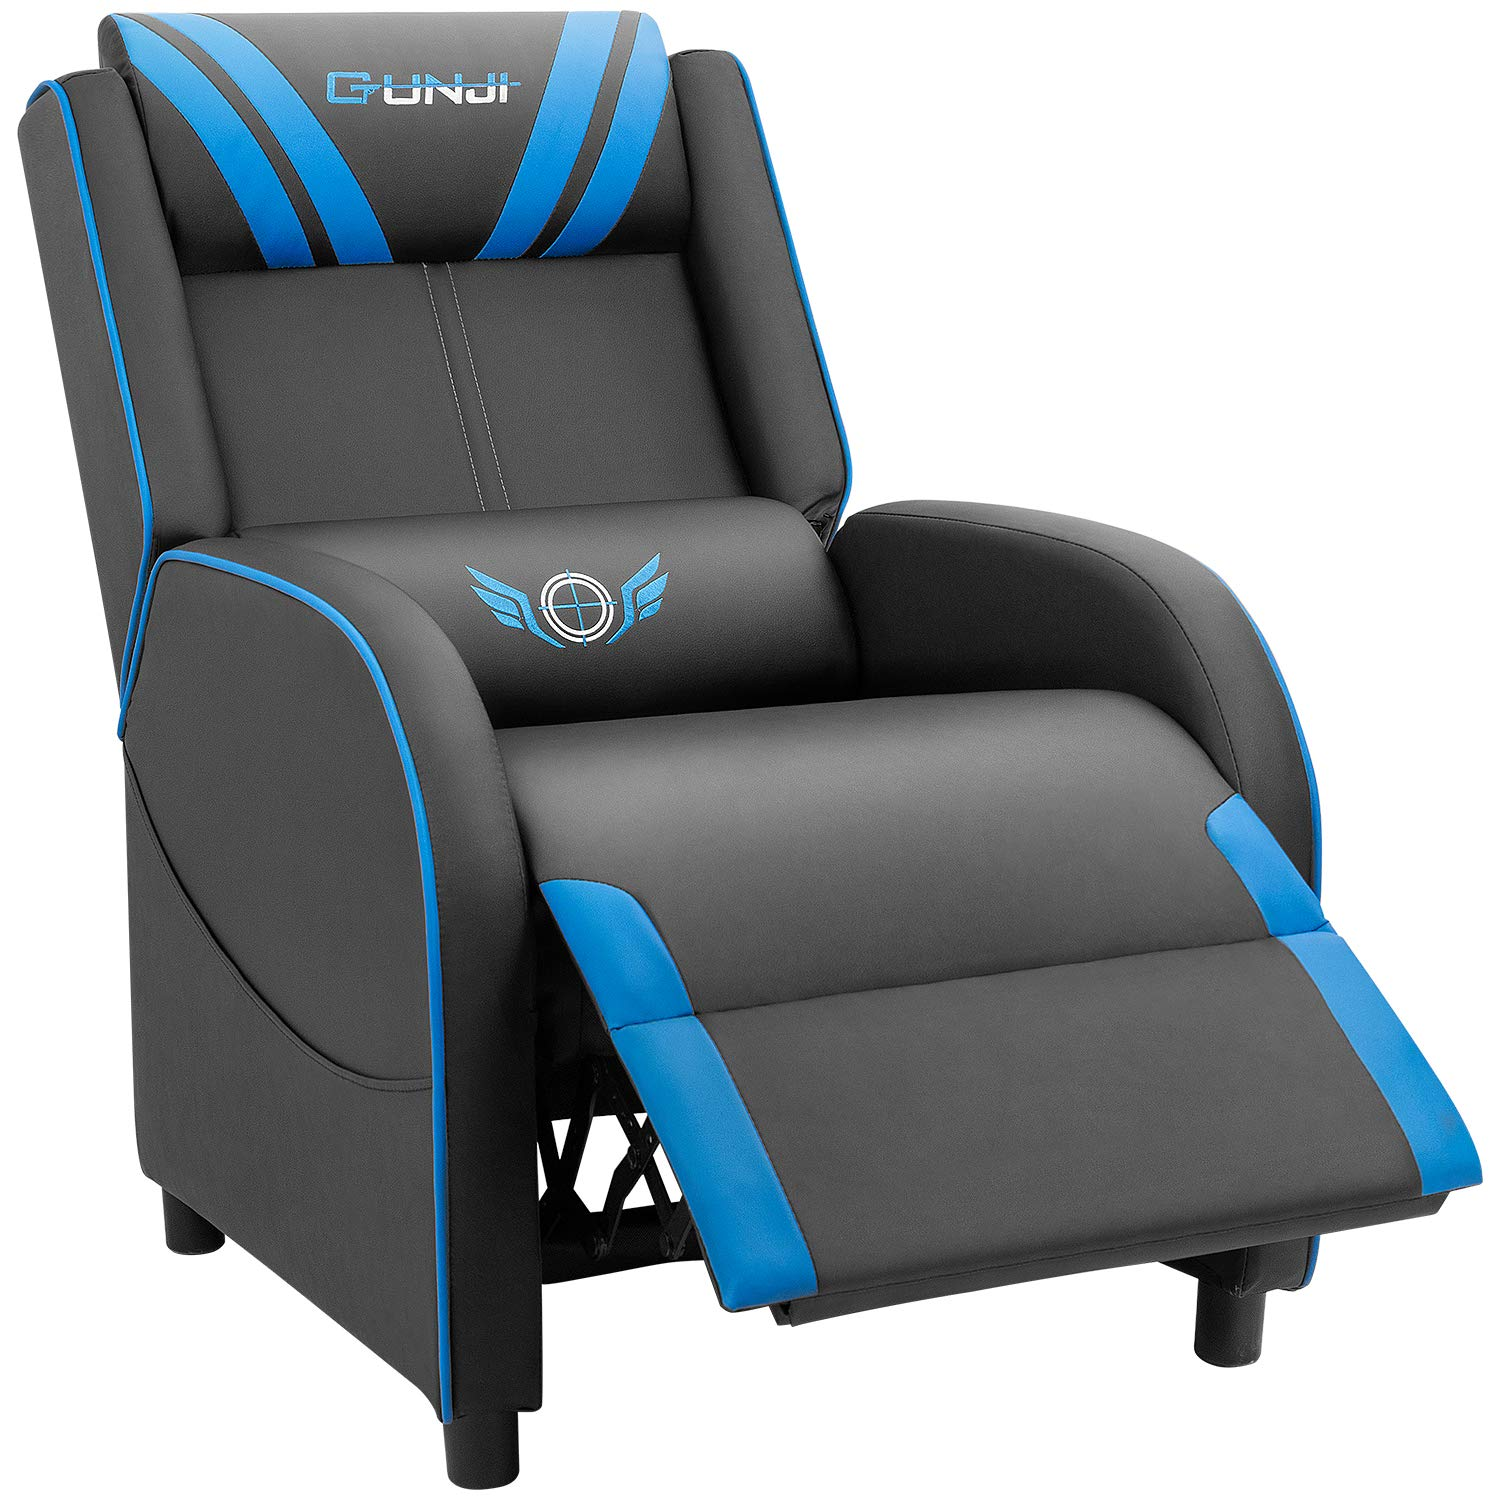 JUMMICO Gaming Recliner Chair PU Leather Single Recliner Sofa Adjustable Modern Living Room Recliners Home Theater Recliner Seat (Blue) by JUMMICO